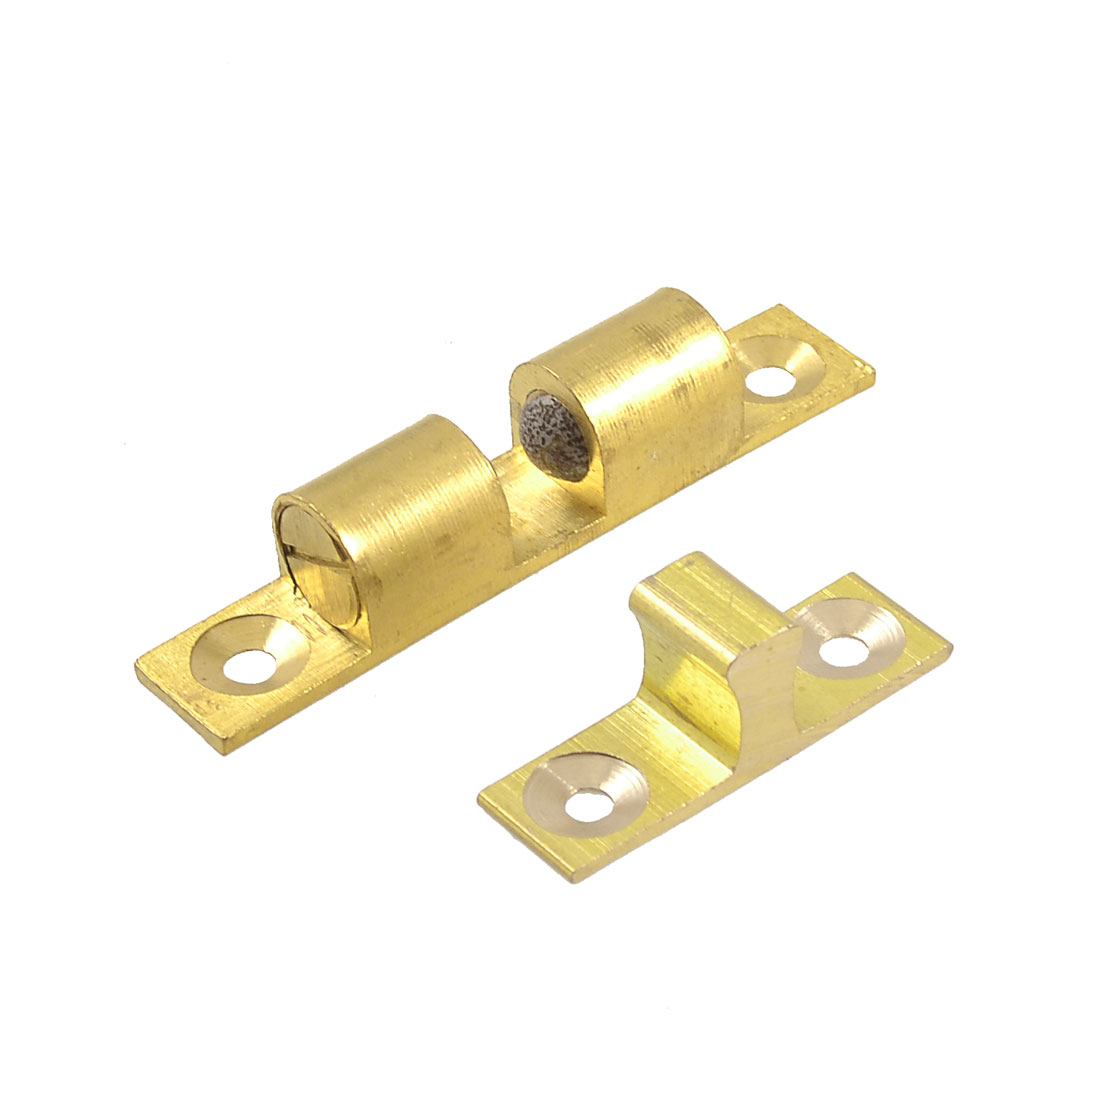 Cupboard Drawer Brass Double Ball Catch 60mm Door Latch